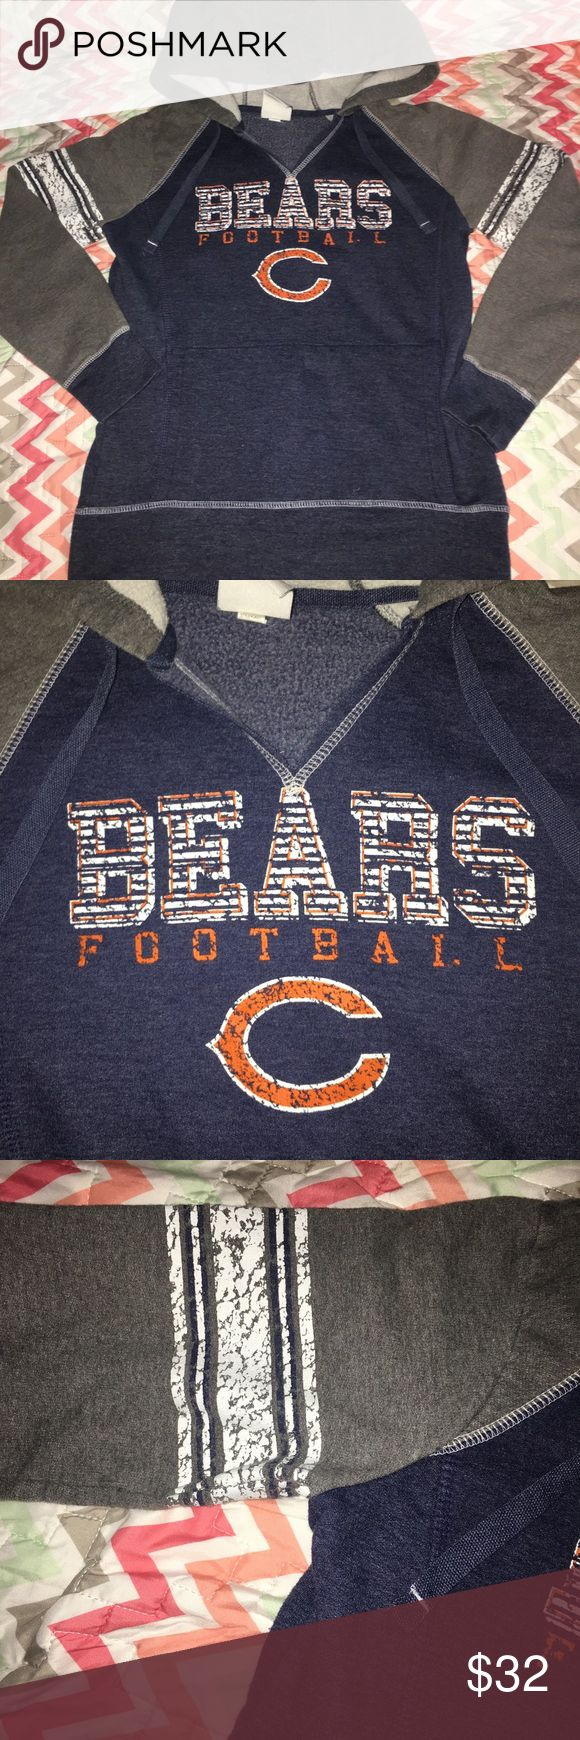 NFL Apparel Chicago Bears Pullover Hoodie - XS PRICE is negotiable, unless otherwise stated.   Details: color block design gray and blue. Has Sport stripes and Graphic logo across front the Graphic is a crackle design. This has never been worn but has been washed.  ••COLOR: gray white blue and orange   Size: No tag fits XS   Brand: NFL Apparel   Condition: Like New   #CksOverload #CKsCloset #ClosetOverload #ShopNow #Share #Follow #ISO #InstaShop #ForSale #NOTRADE #PoshCompliant   ••I do NOT…